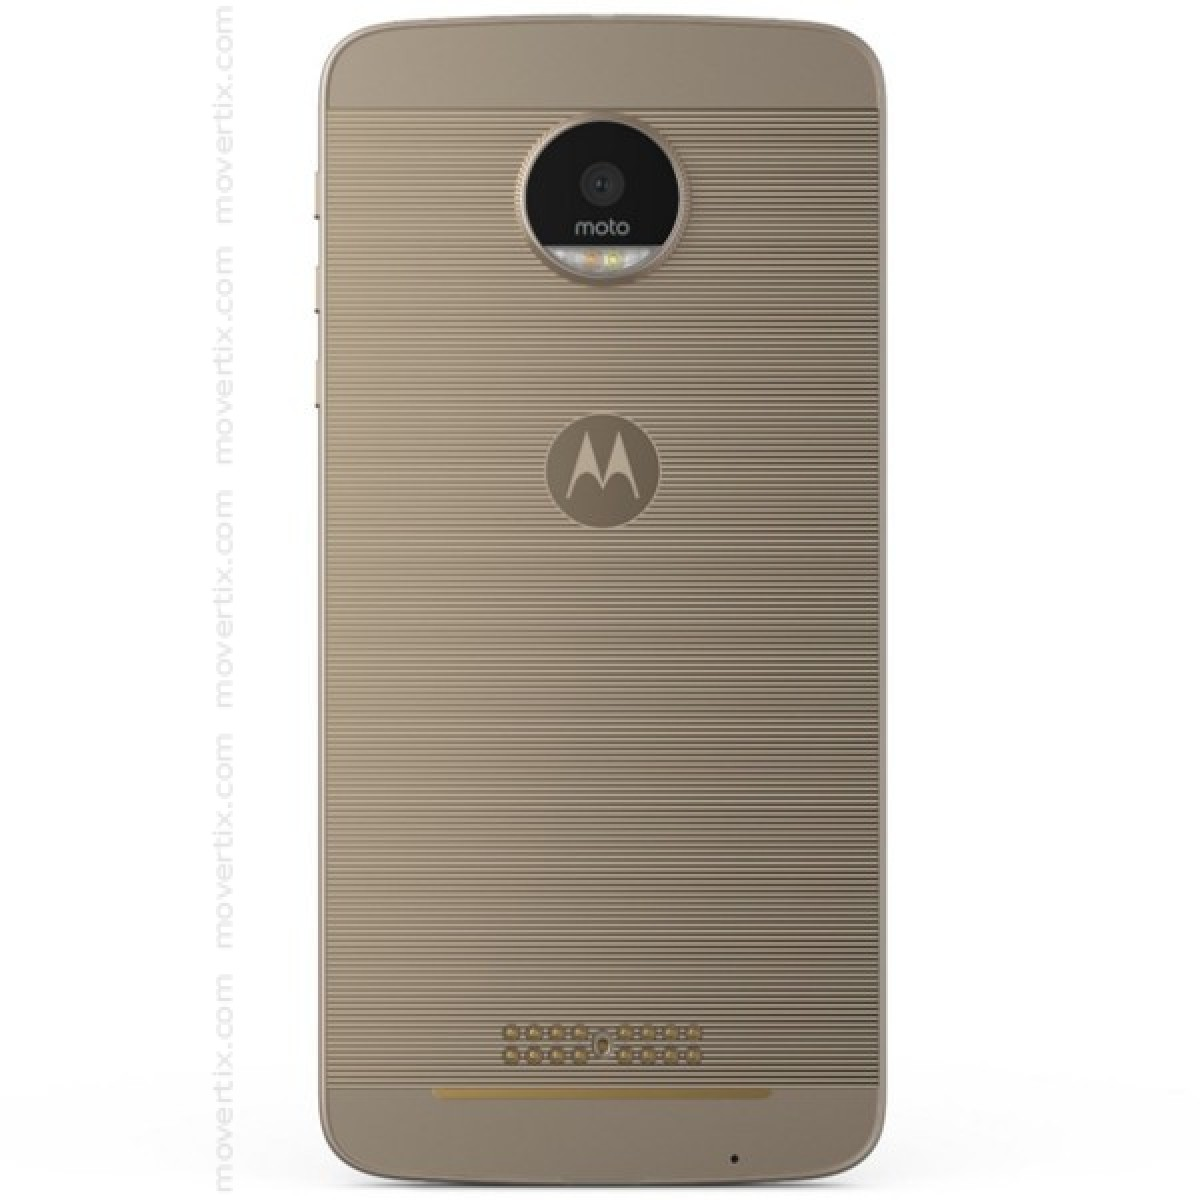 moto z phone white. Get The Motorola Moto Z In White Color, A Spectacular Smartphone With 4GB Of RAM And Smart Gesture Recognition. Phone